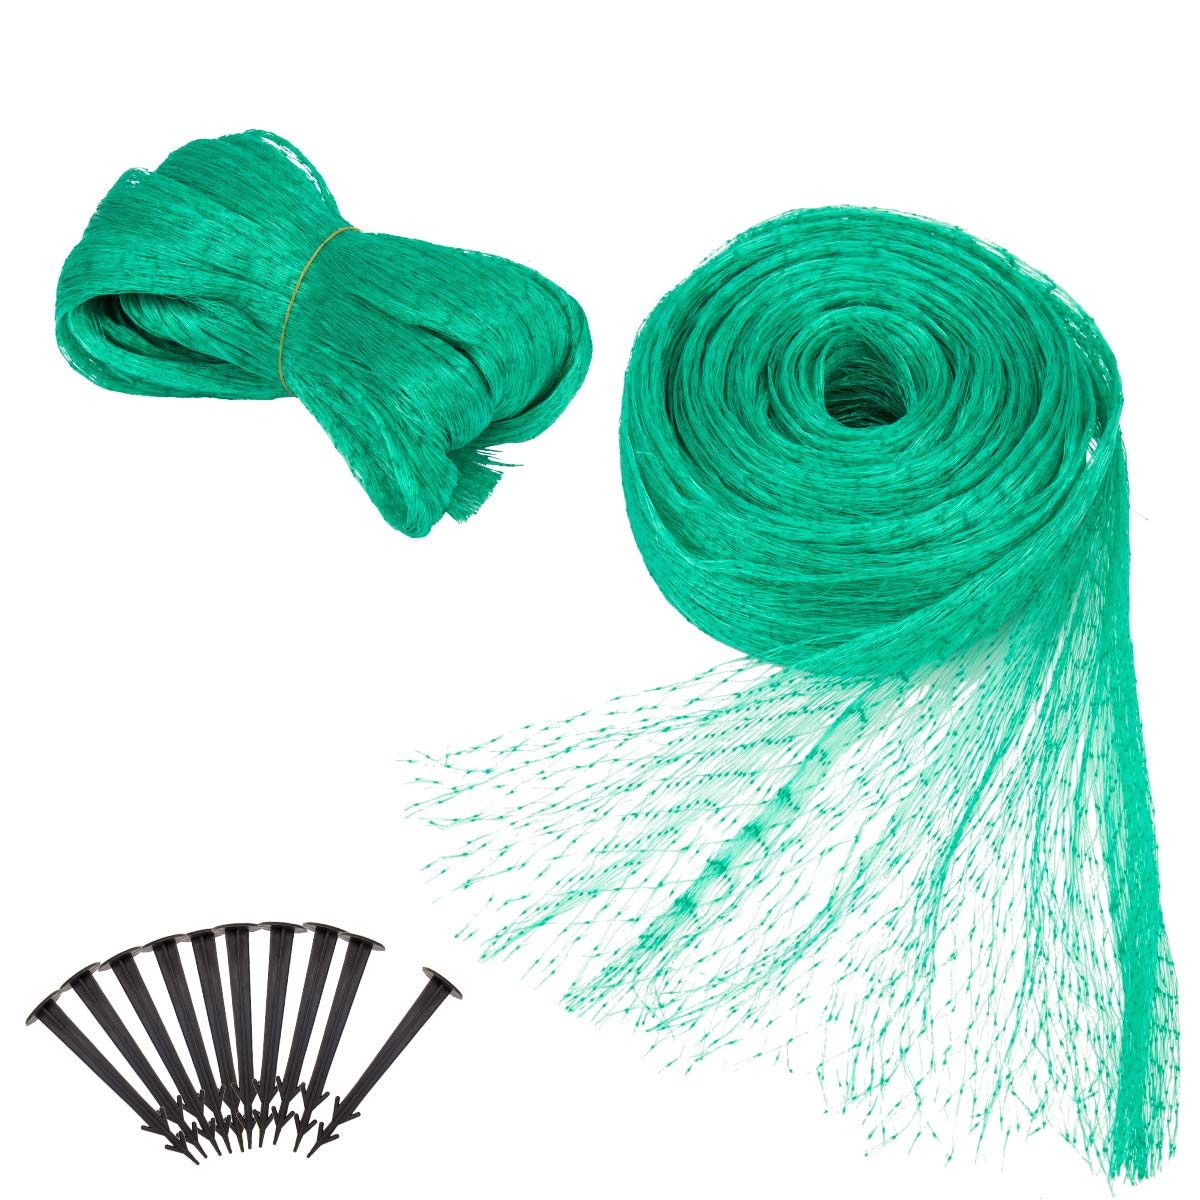 Apipi 2 pack 13Ft x 33 Ft Anti Bird Netting -Green Anti Bird Protection Net Mesh- Garden Plant Netting to Protect vegetable Fruit from Rodents Birds Deer and Other Pests